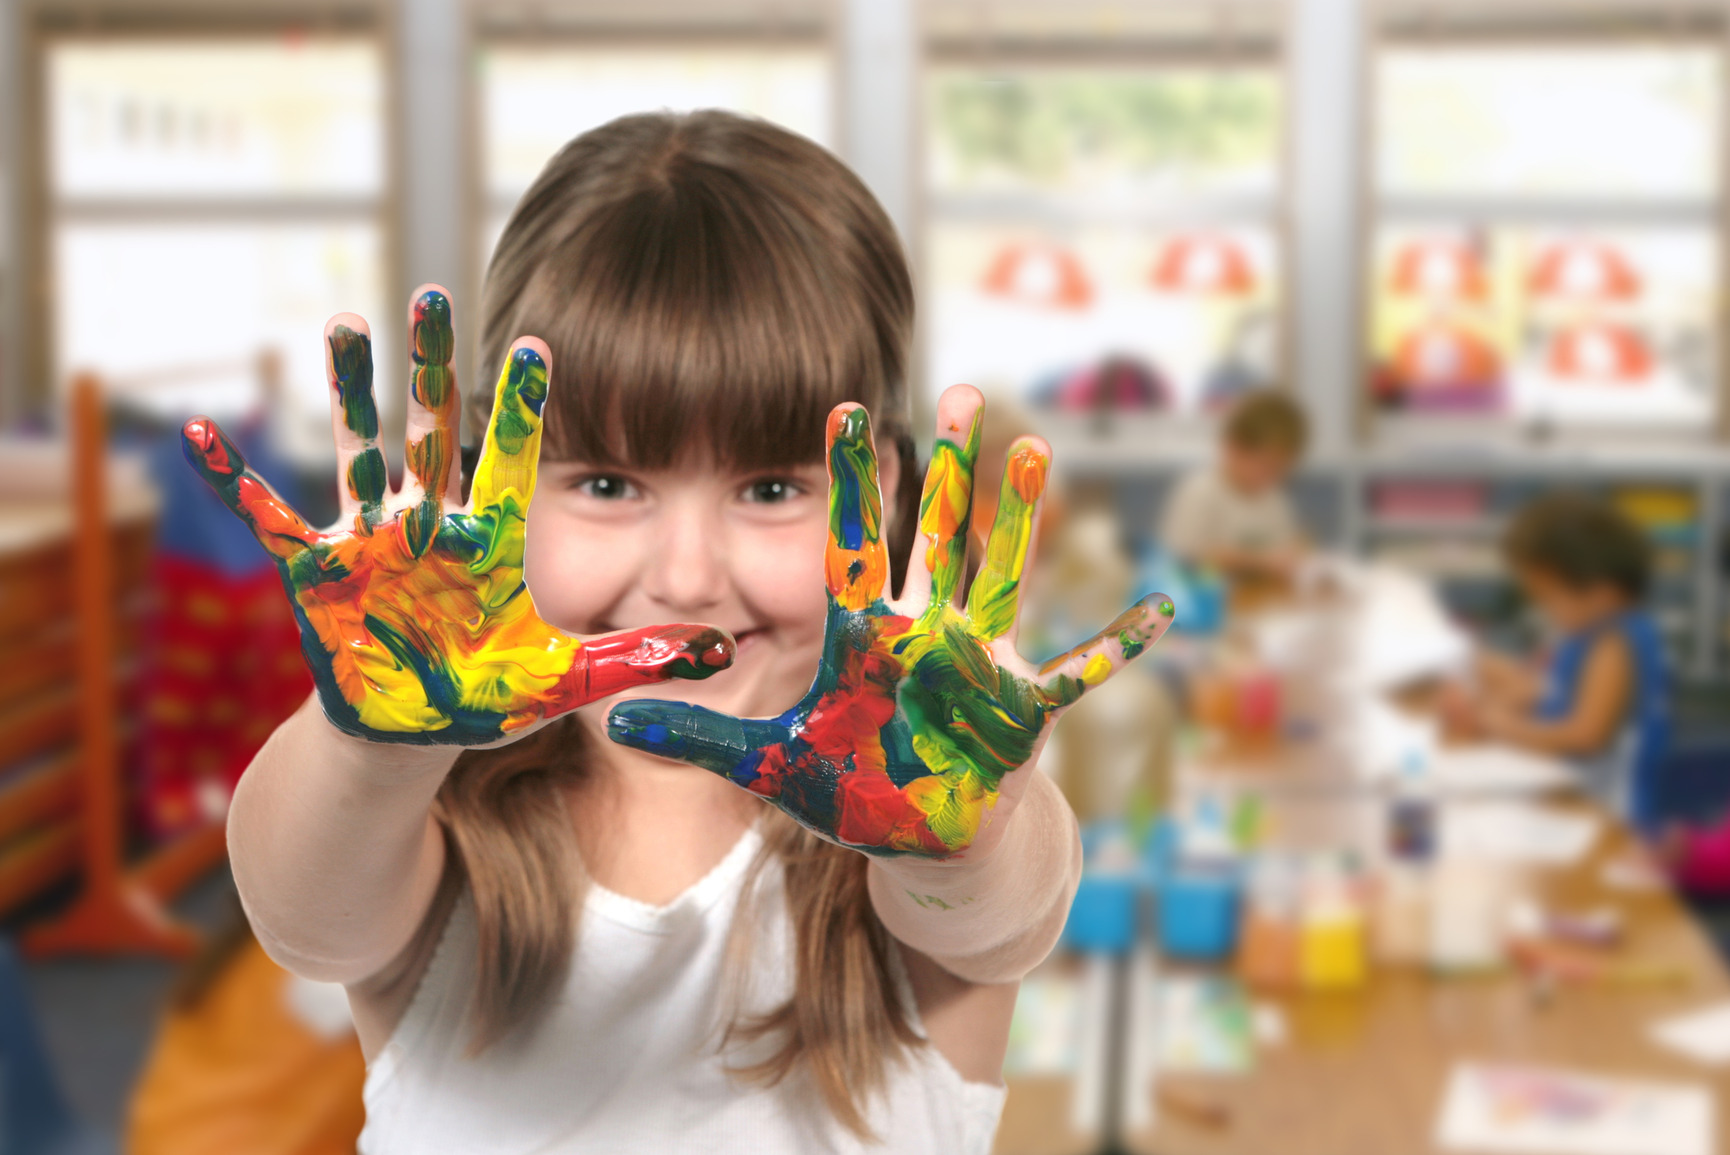 photodune-833911-classroom-painting-in-kindergarten-m